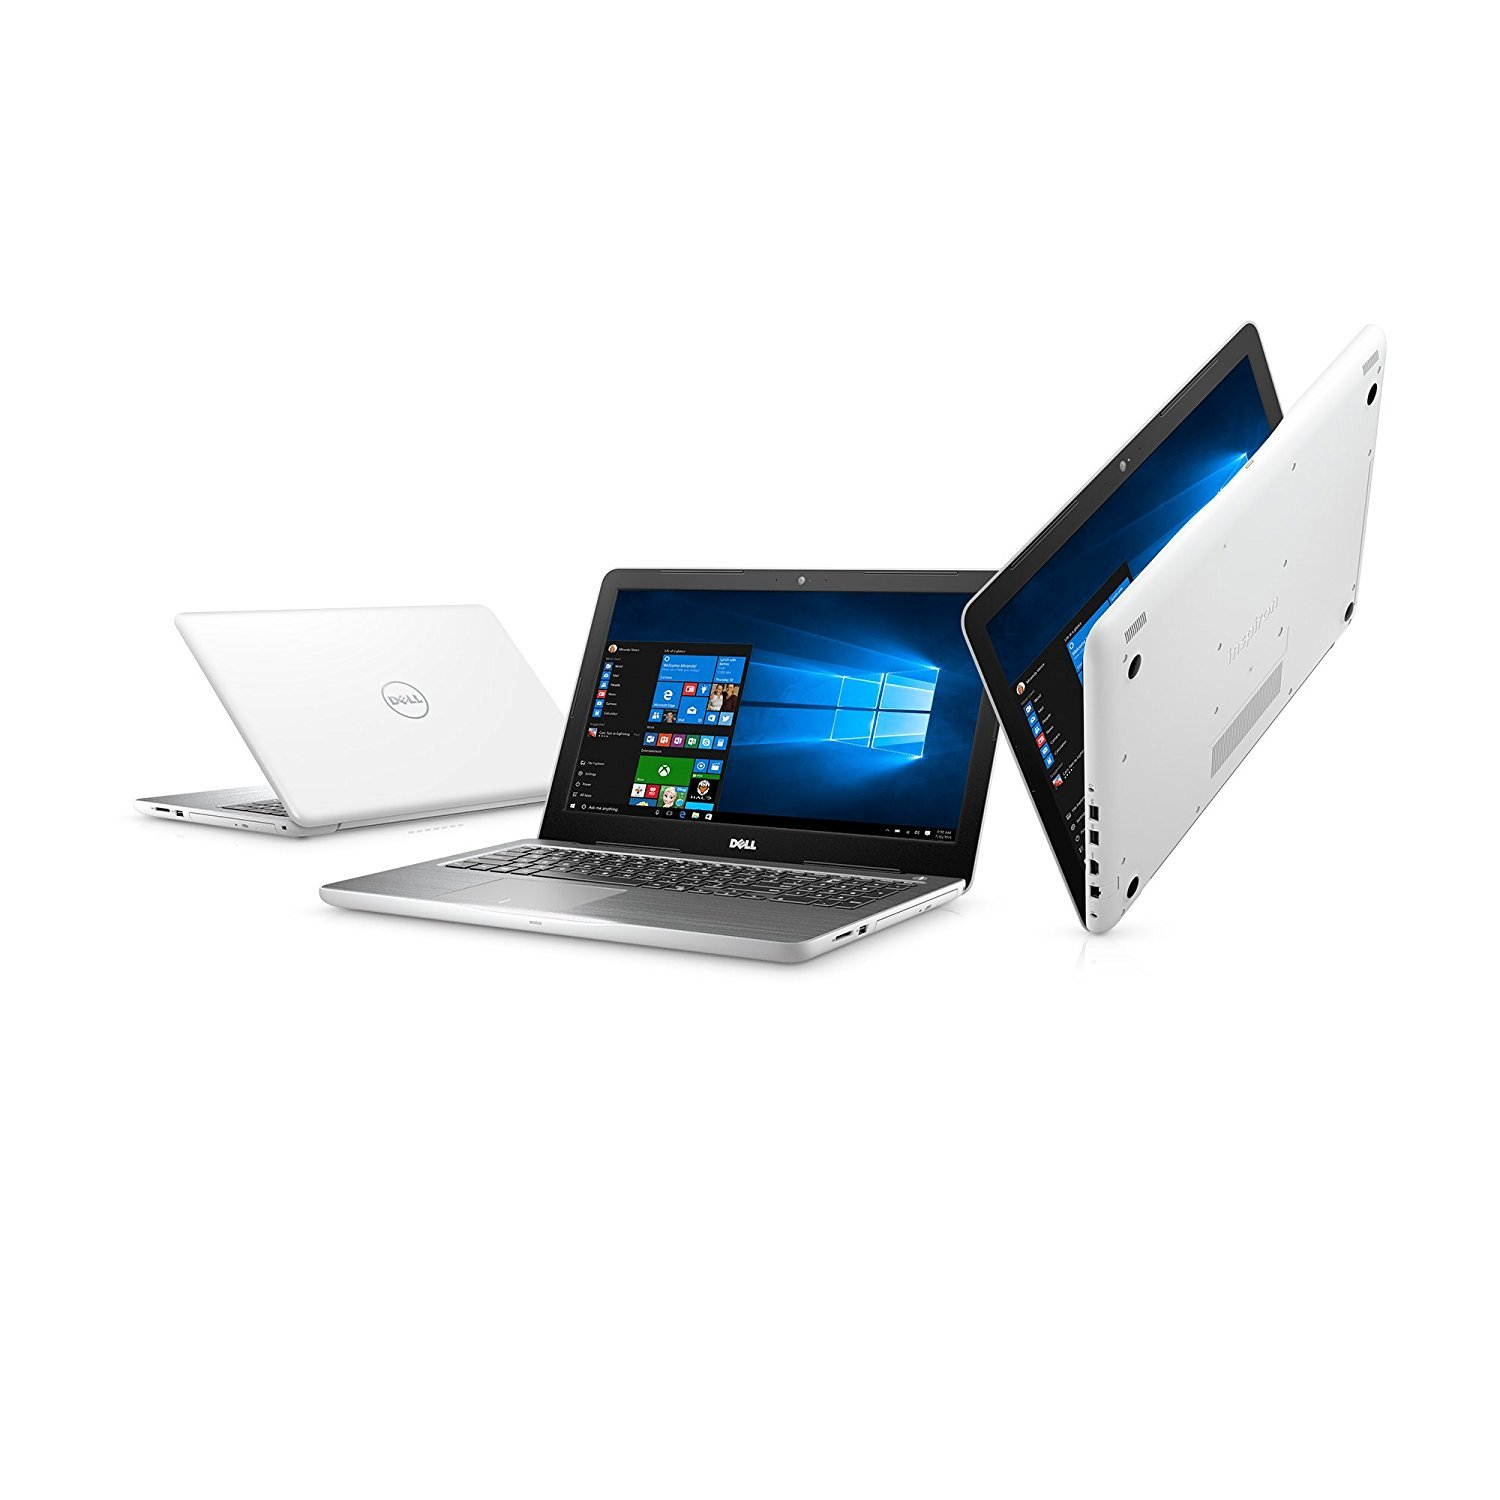 Dell i5567-0927WHT ,15.6'' Laptop,(Intel Core i3 (up to 2.40 GHz),8GB,1TB HDD),Intel HD Graphics 620, Sparkling White by Dell